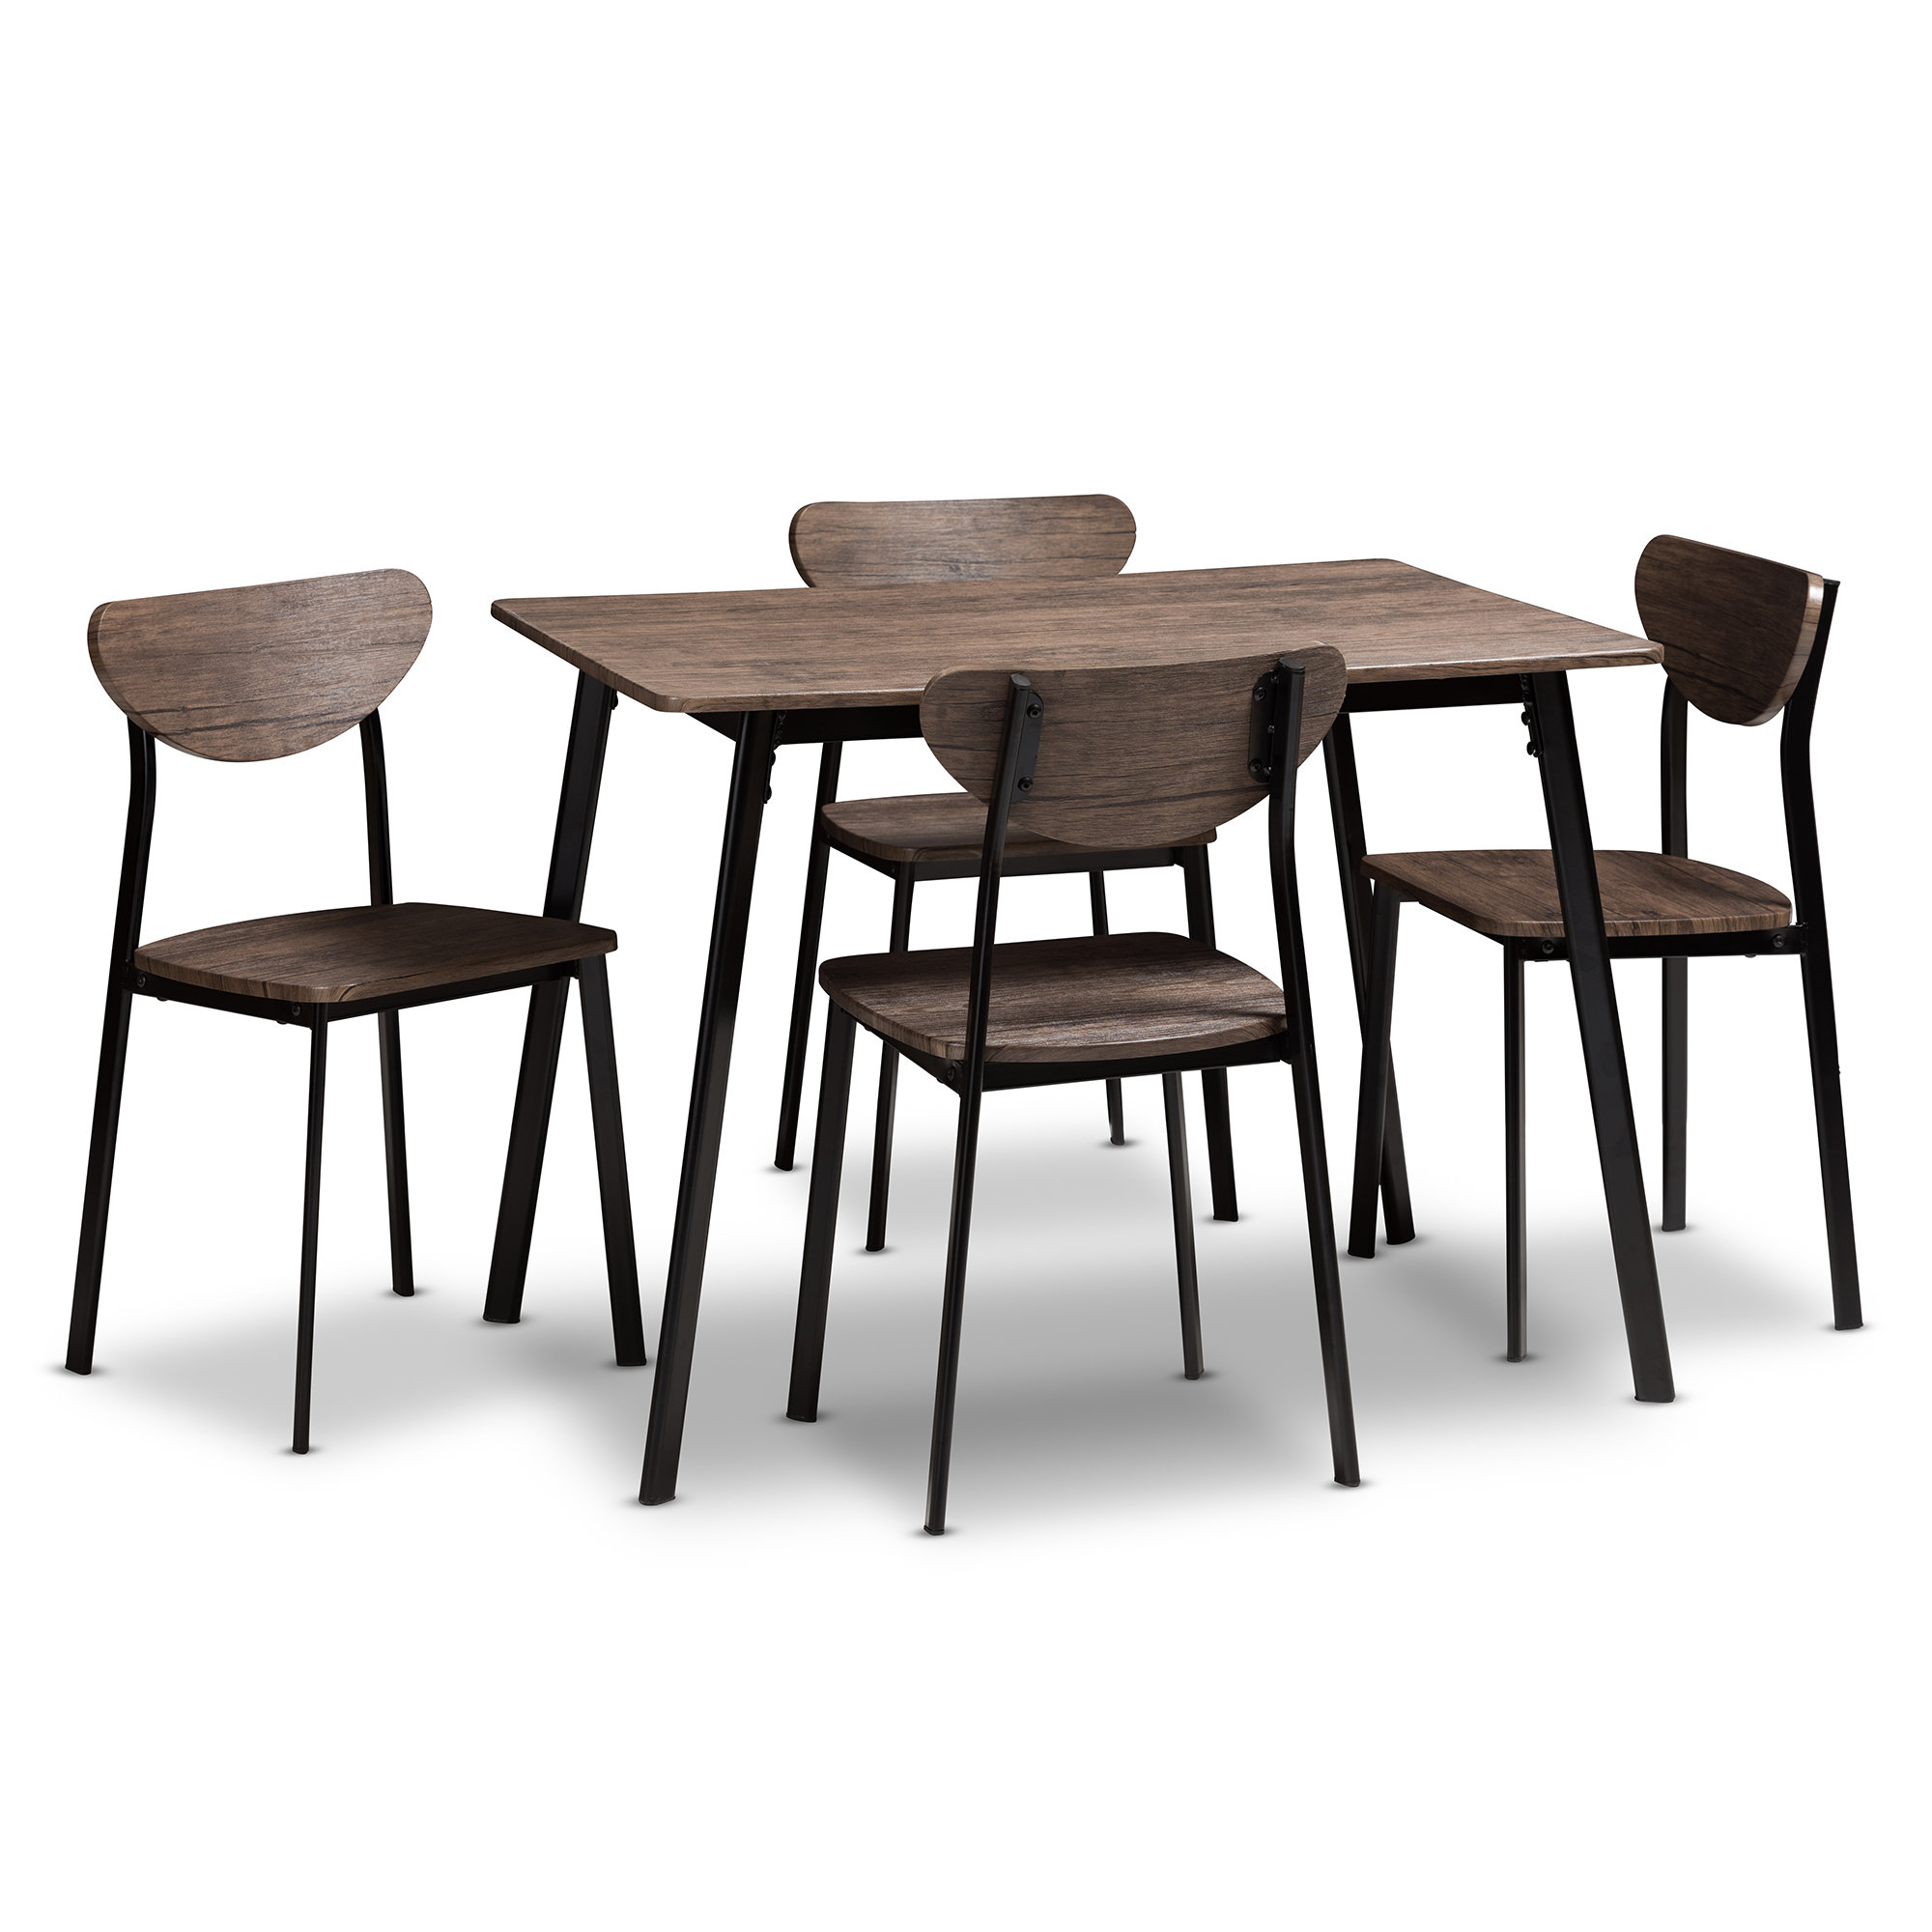 Preferred Telauges 5 Piece Dining Sets Within Tejeda 5 Piece Dining Set (View 4 of 20)